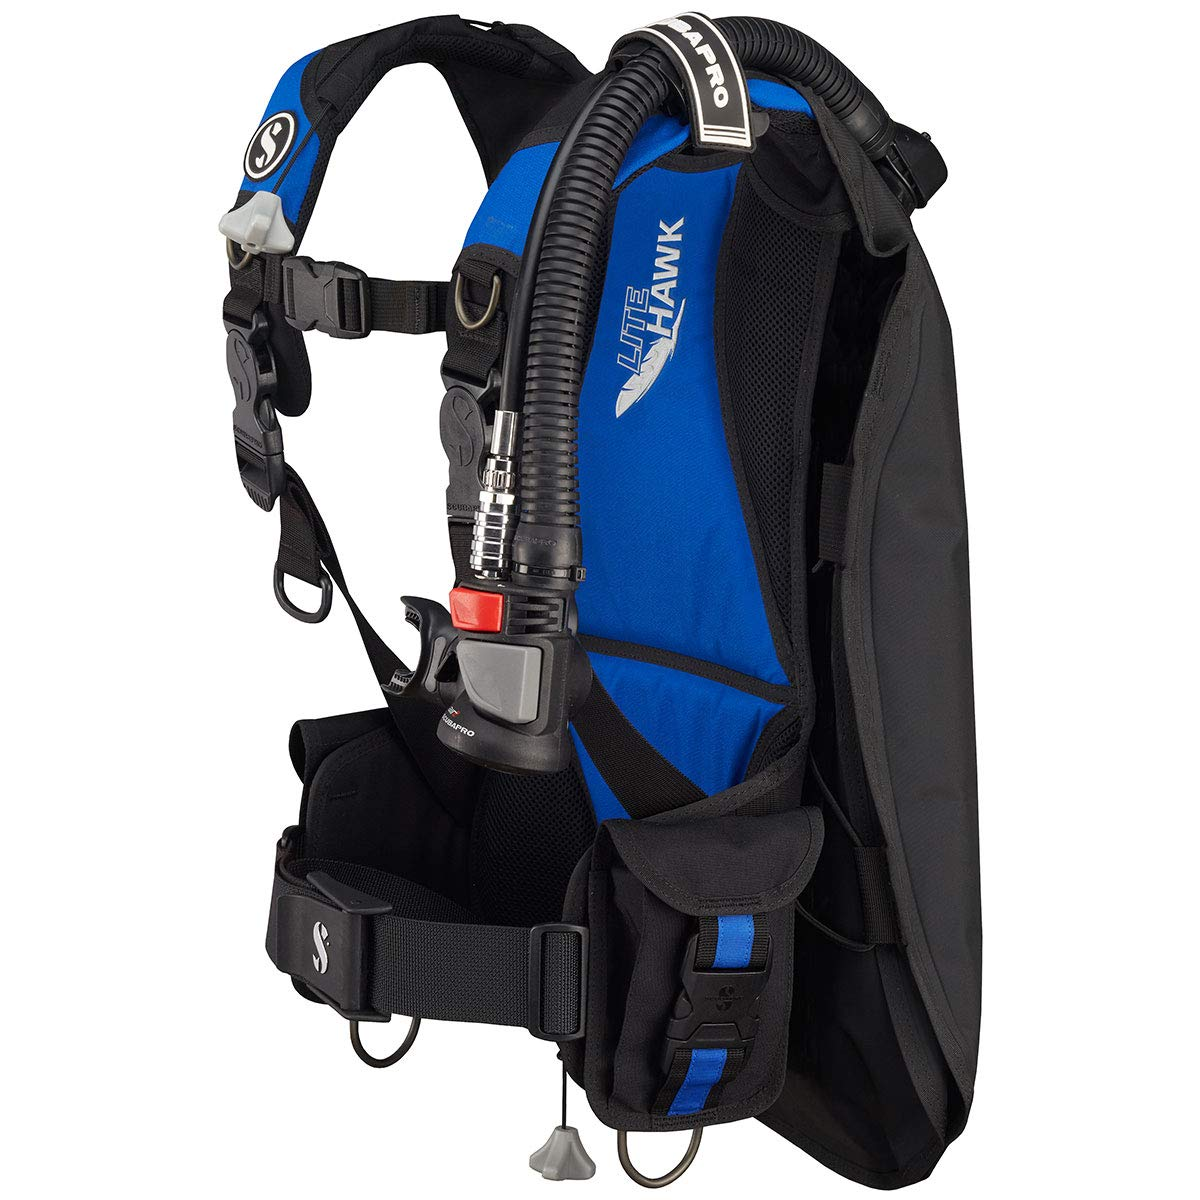 Scubapro Litehawk BCD with Air 2 (Medium/Large, Black/Blue)